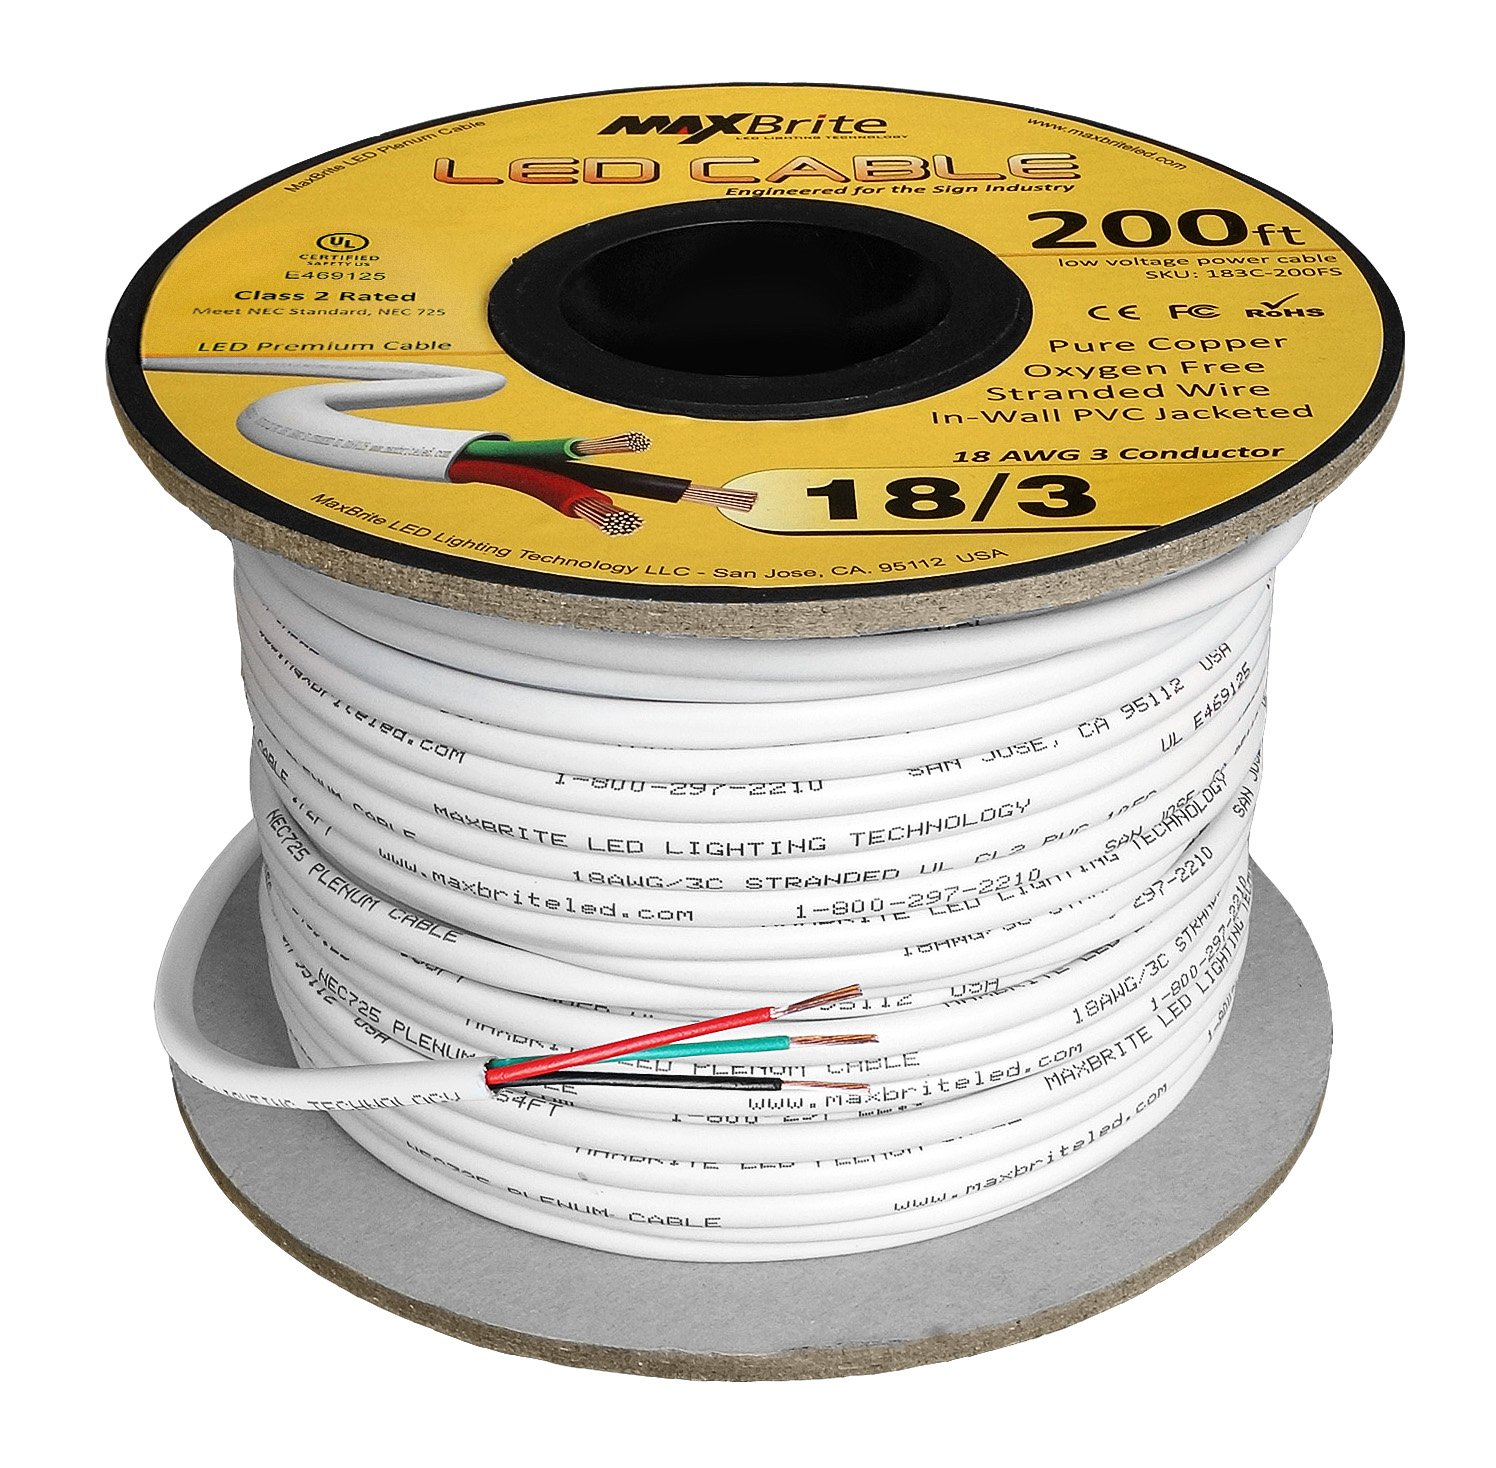 Amazon.com: 18AWG Low Voltage LED Cable 3 Conductor Jacketed In-Wall ...